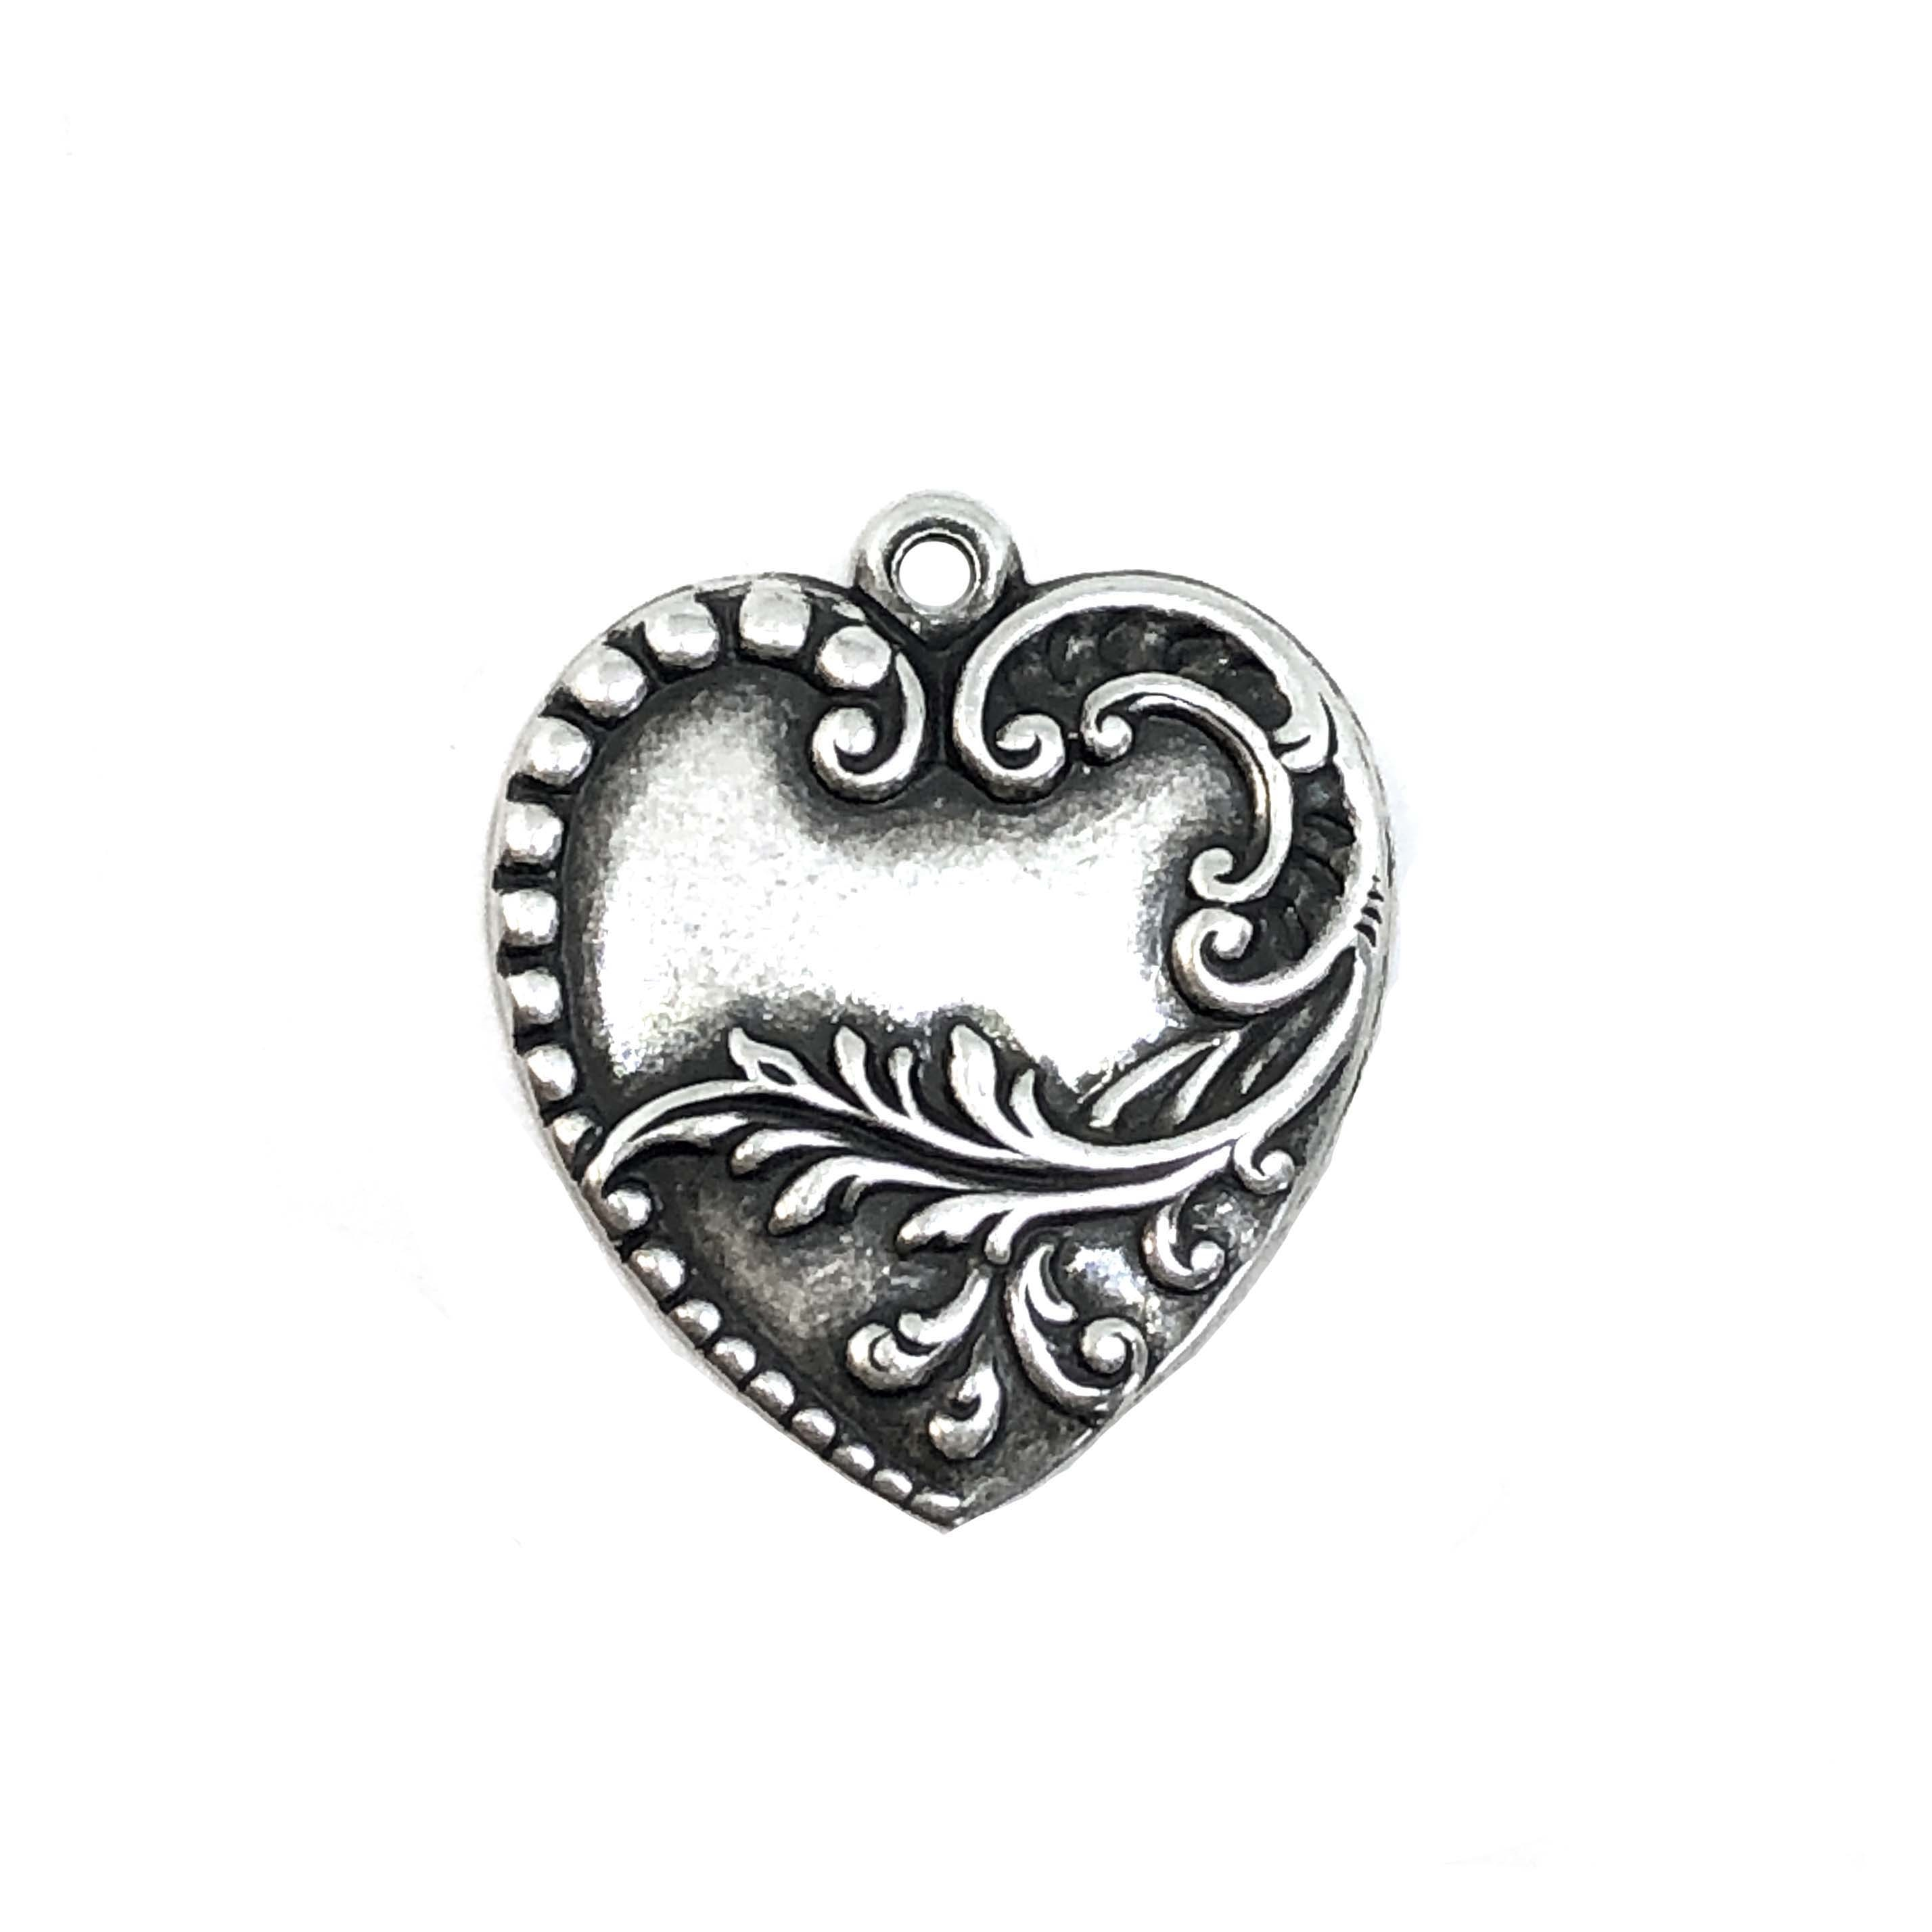 silverplate floral heart charm, heart. charm, silverware, silverplate, heart charm, stamping, silver, floral, floral heart, floral design, brass hearts, 28 x 24mm, us made, nickel free, jewelry findings, jewelry making, vintage supplies, 09713